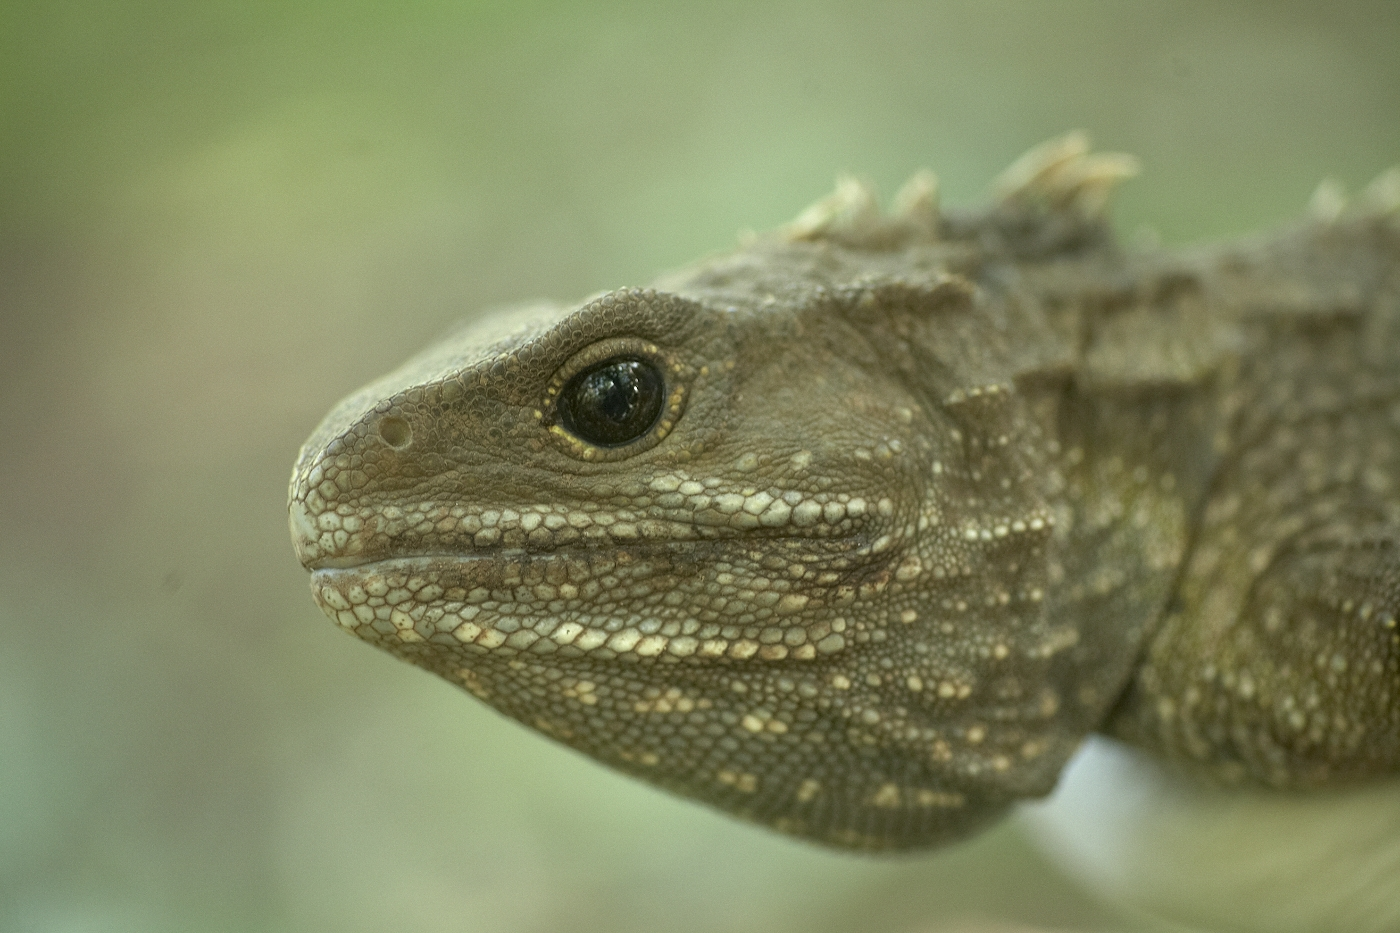 Tuatara sourced from the Brothers were introduced to the island. Photograph by Jean-Claude Stahl. © Te Papa